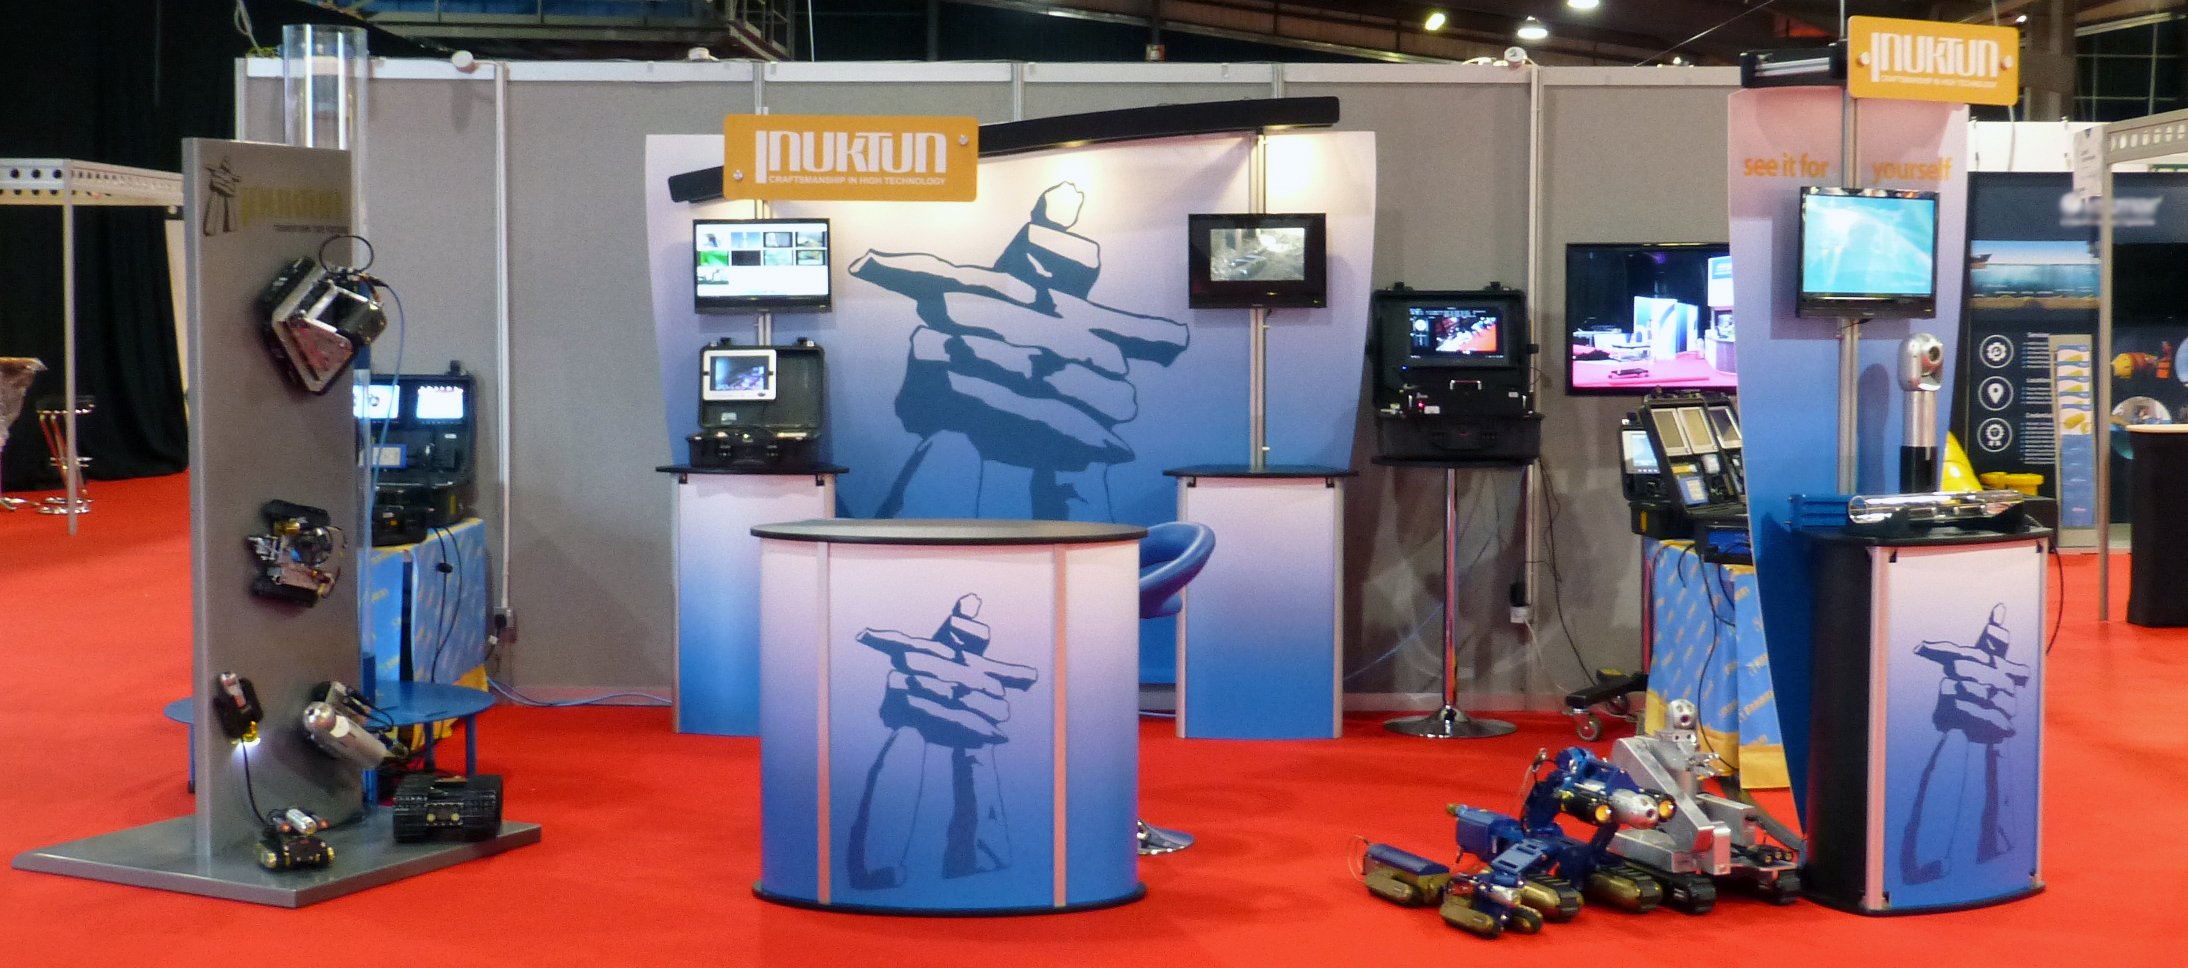 Inuktun Europe's Stand at Subsea Expo 2018